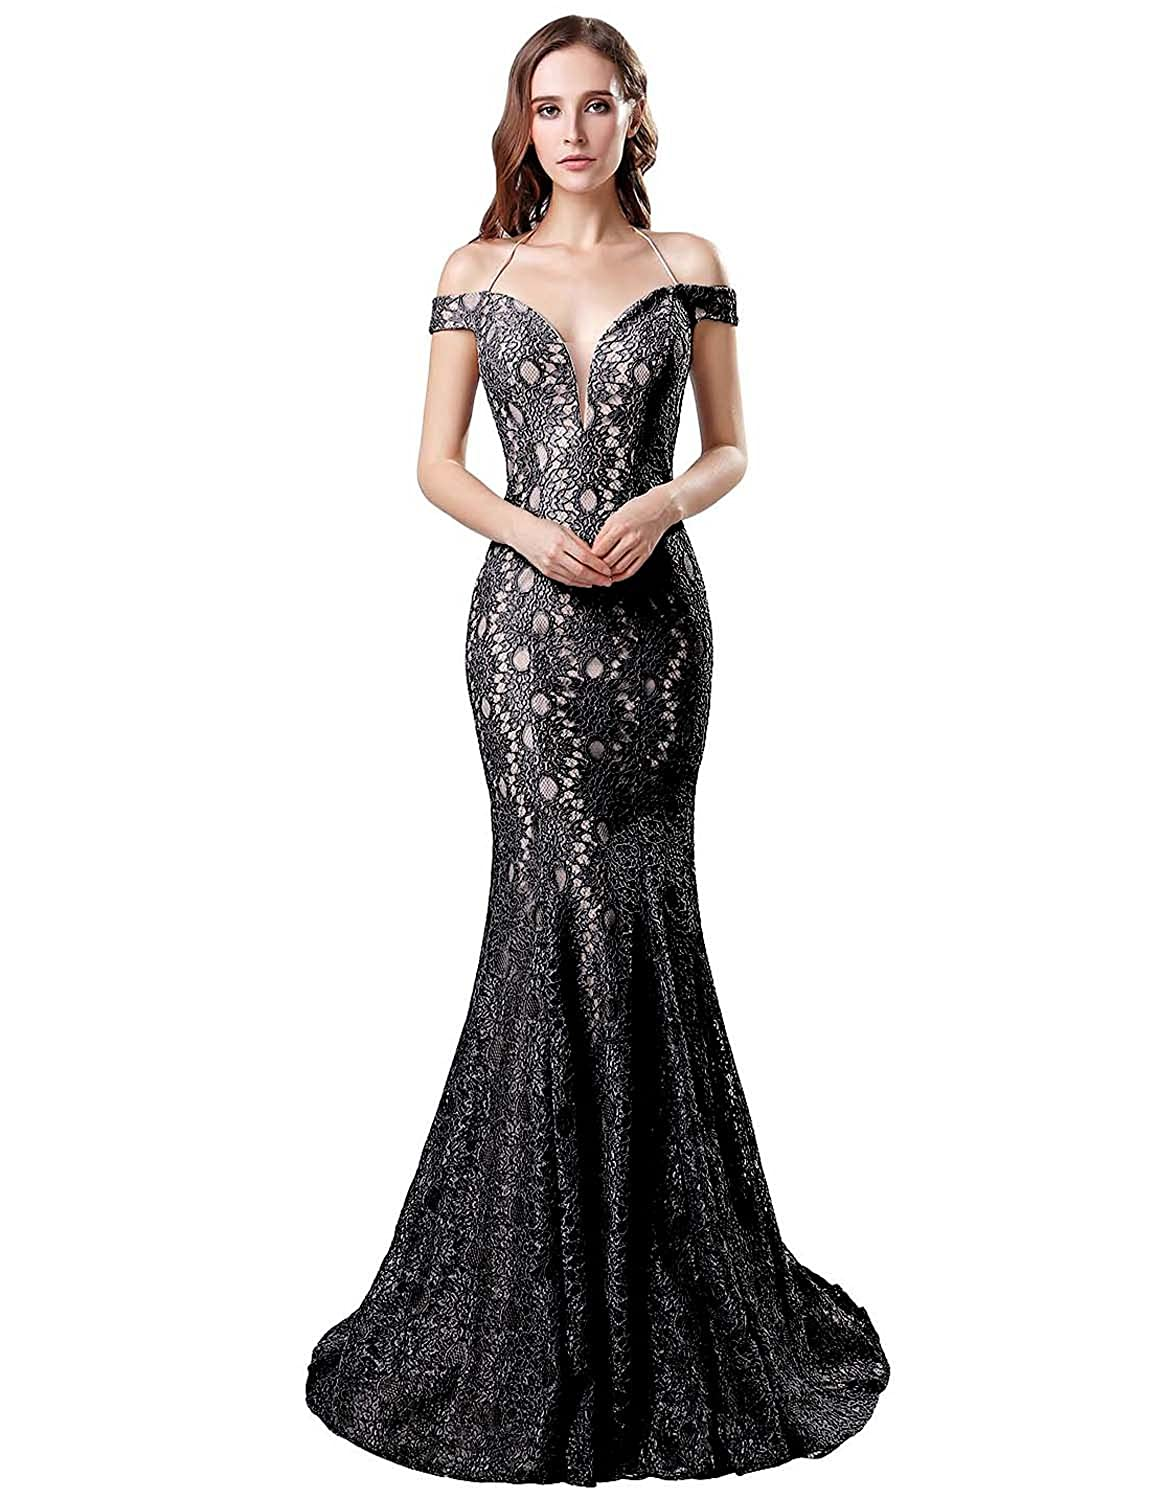 5681ff121d96 Belle House Lace Off The Shoulder Formal Evening Dresses Sexy Mermaid Prom  Dresses 2019 Long for Women at Amazon Women's Clothing store: